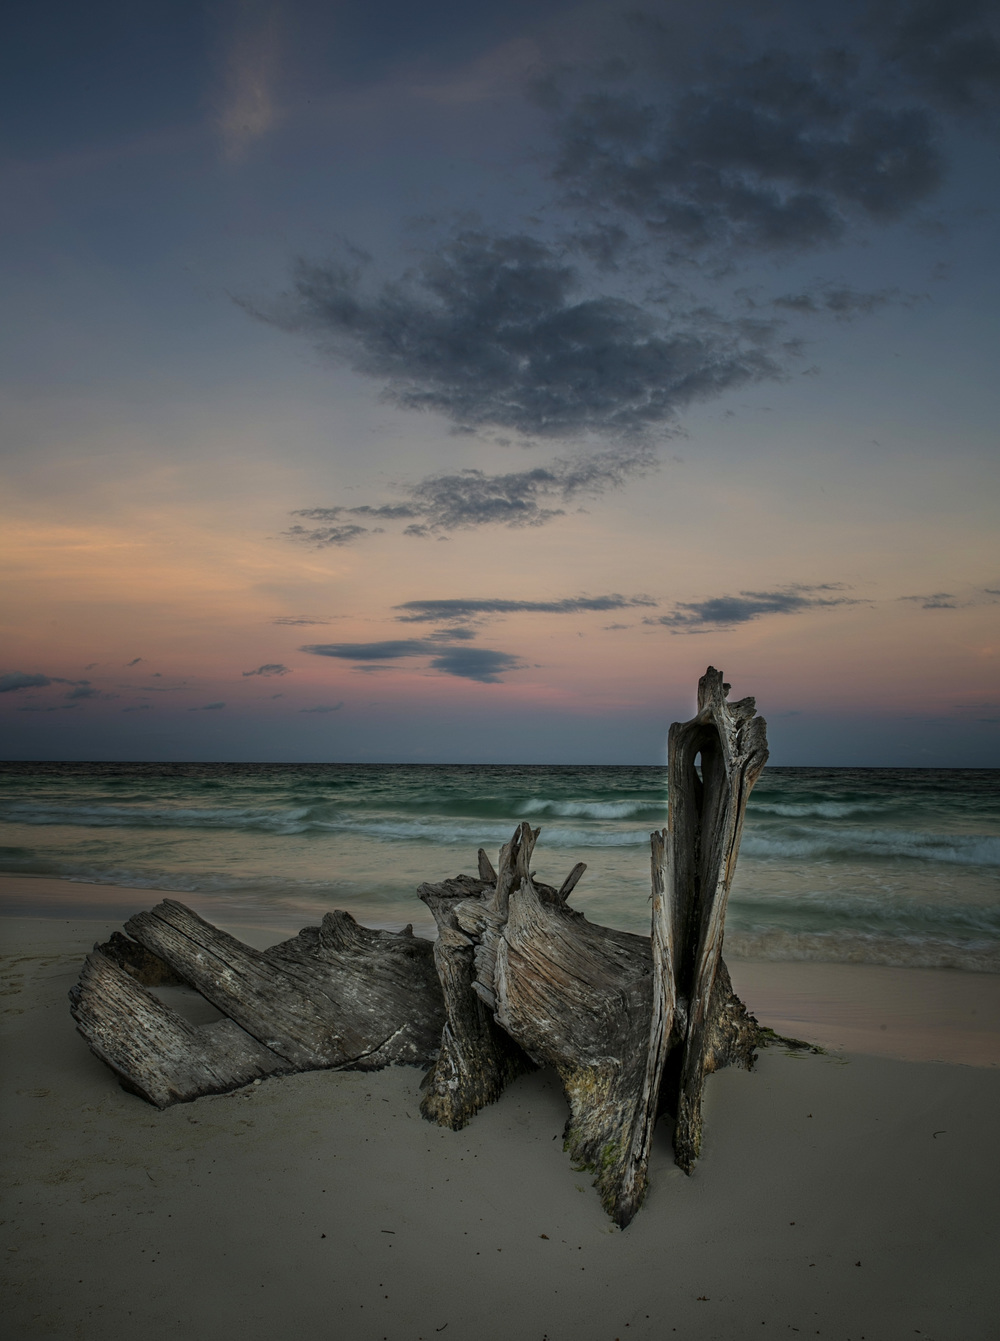 The most interesting driftwood ever....